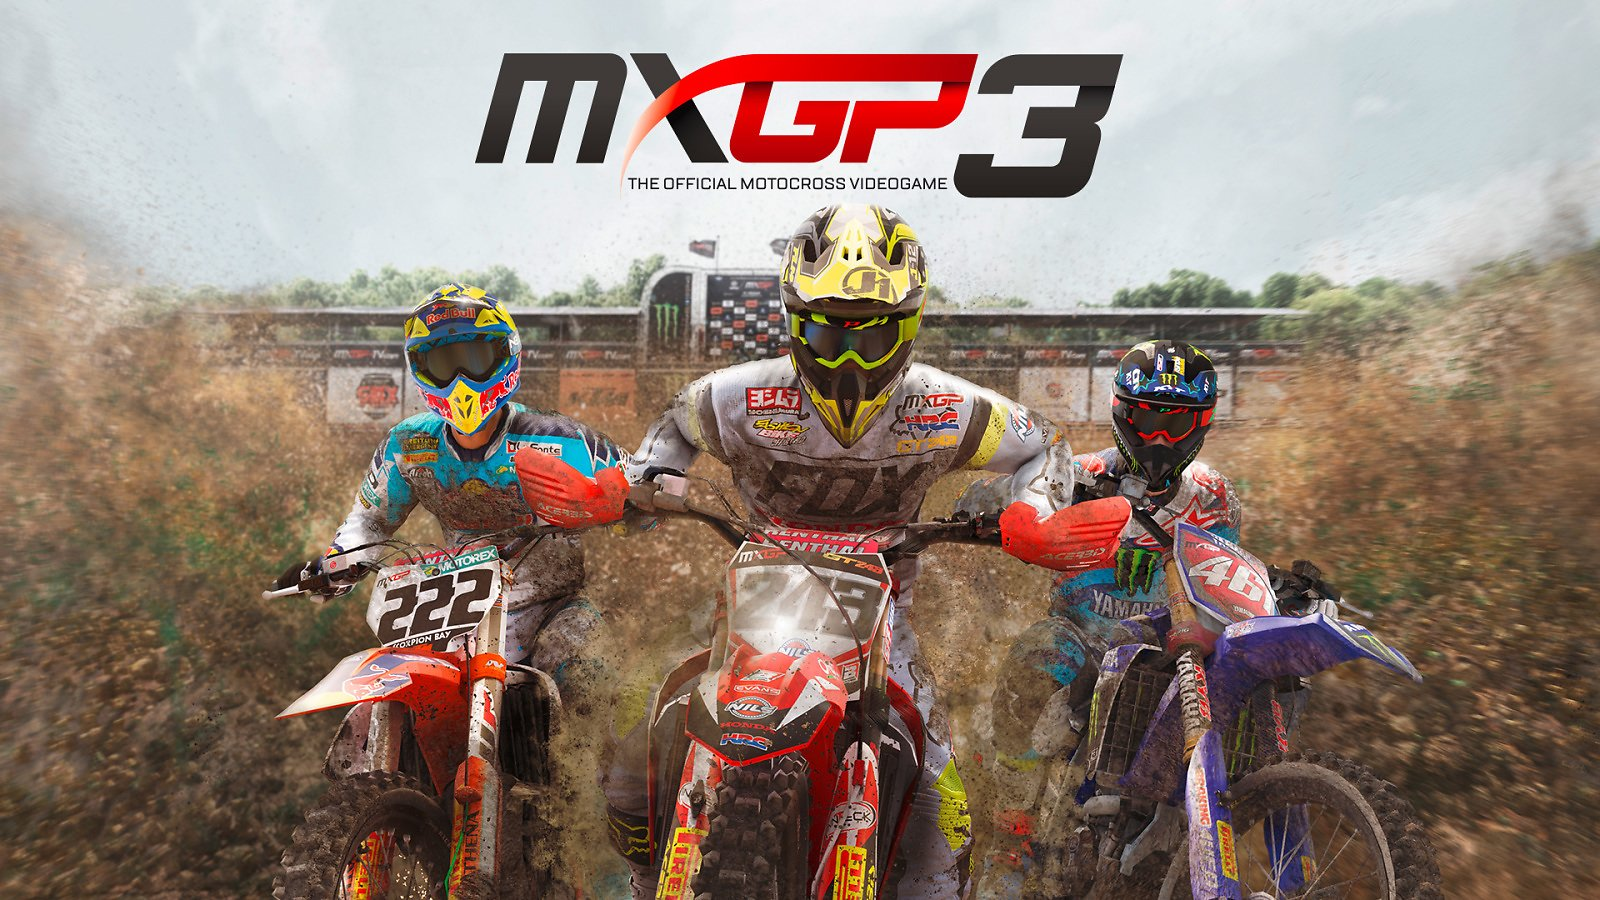 MXGP3 - The Official Motocross Videogame for Nintendo Switch